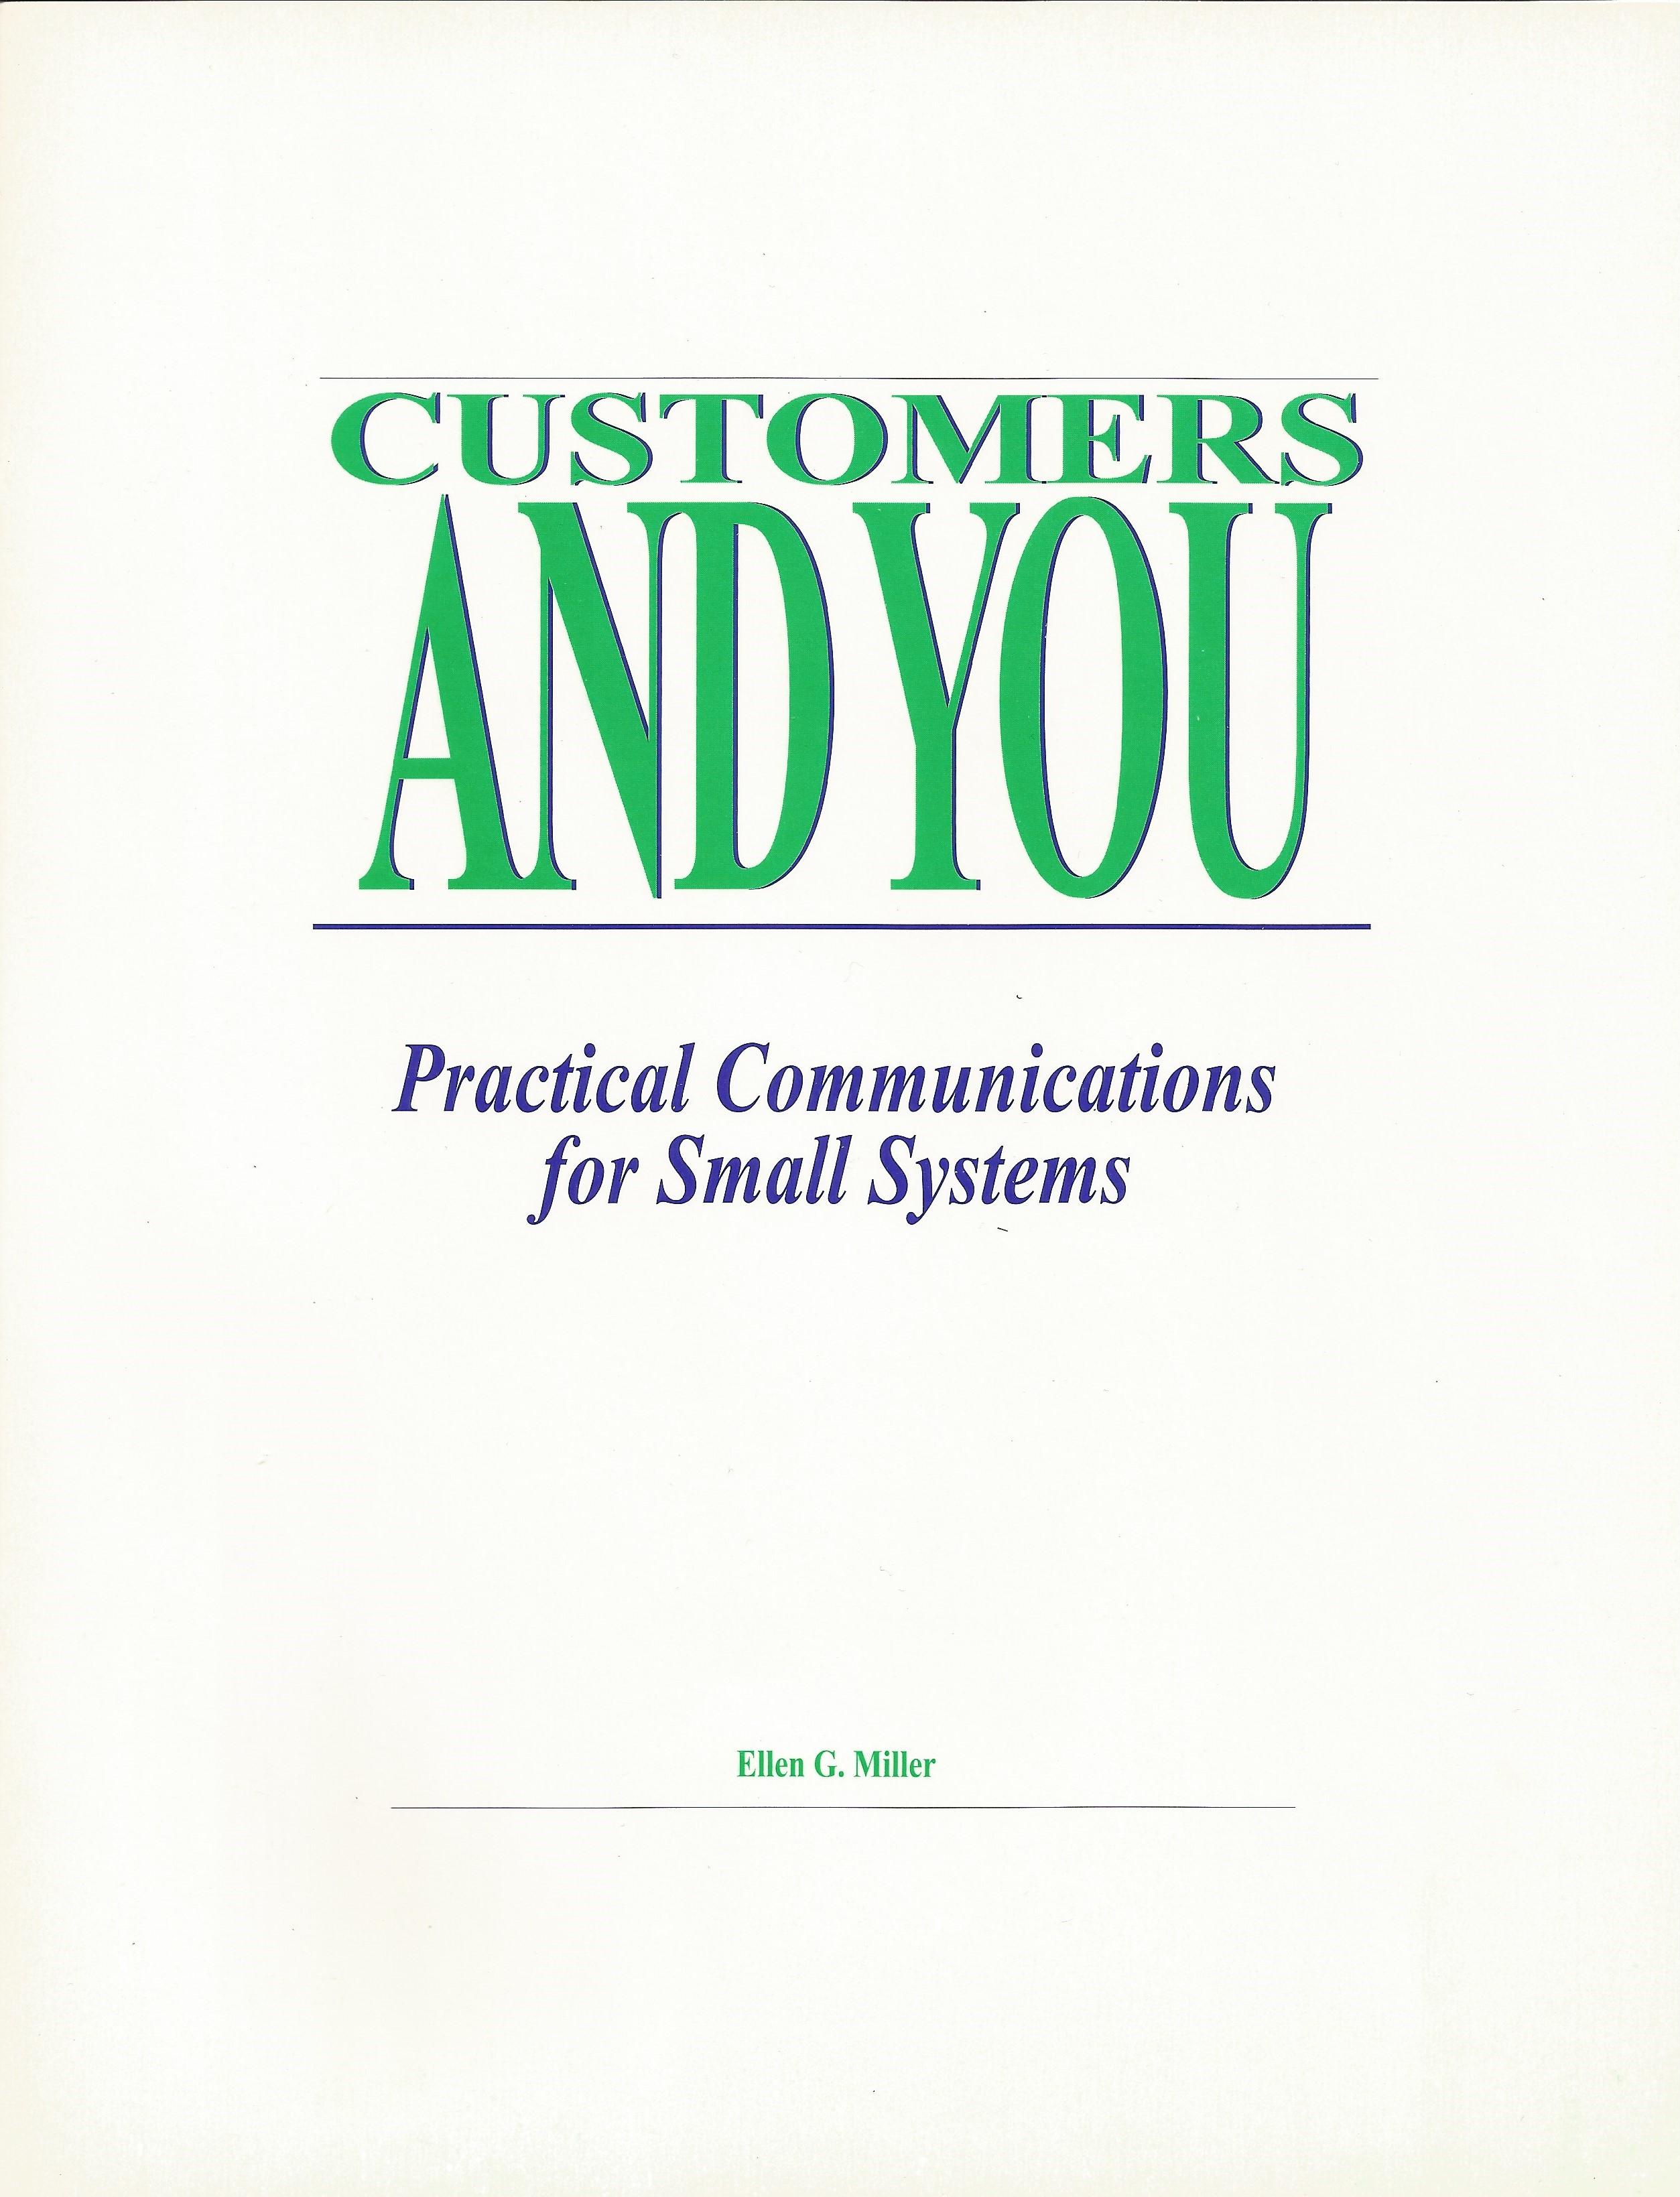 Customers and You: Practical Communications for Small Systems